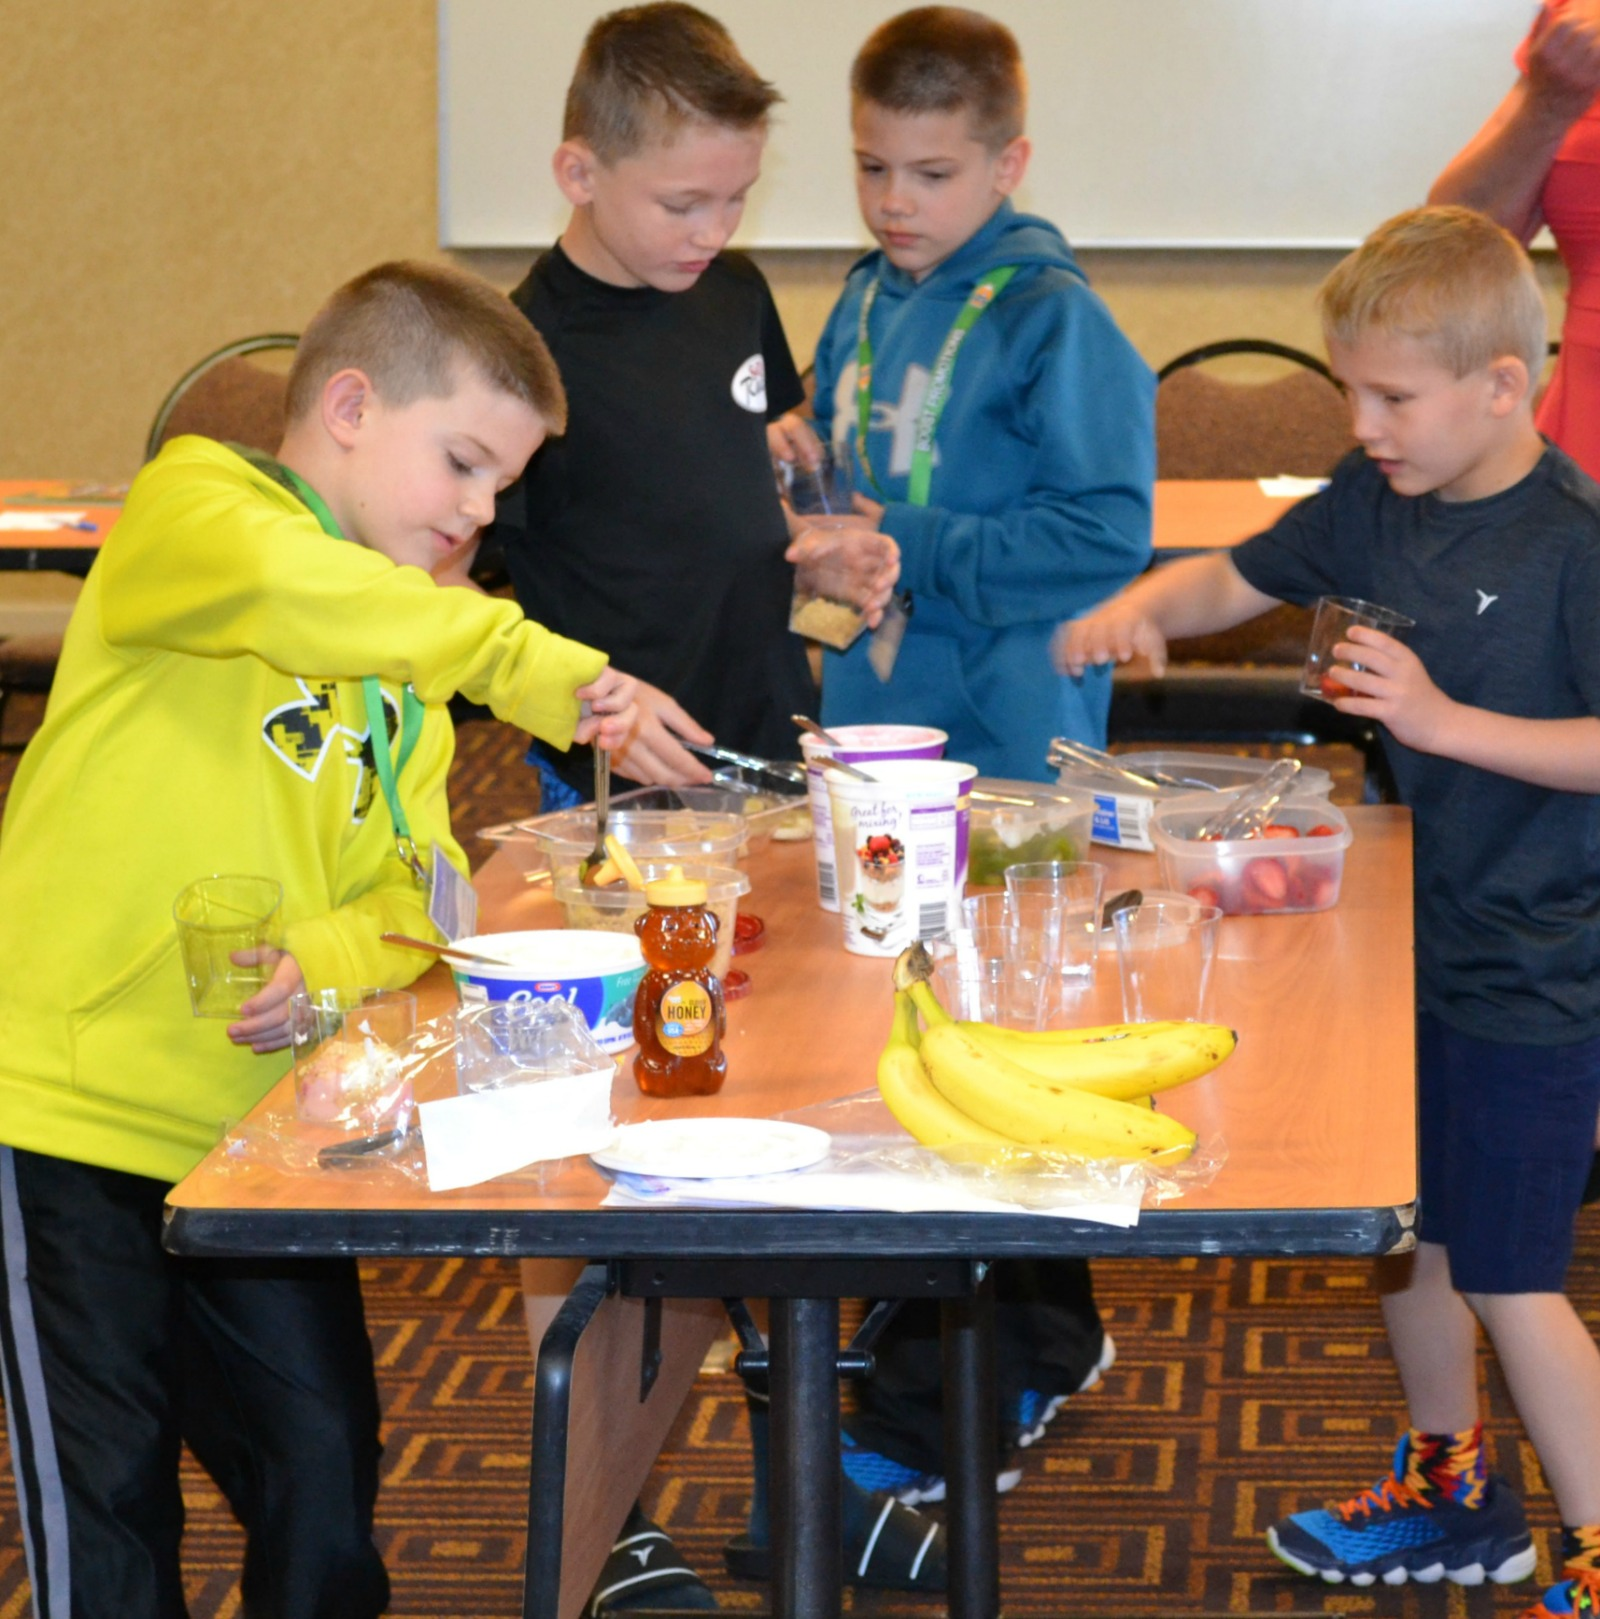 parfait bar, healthy snacks, pta workshop